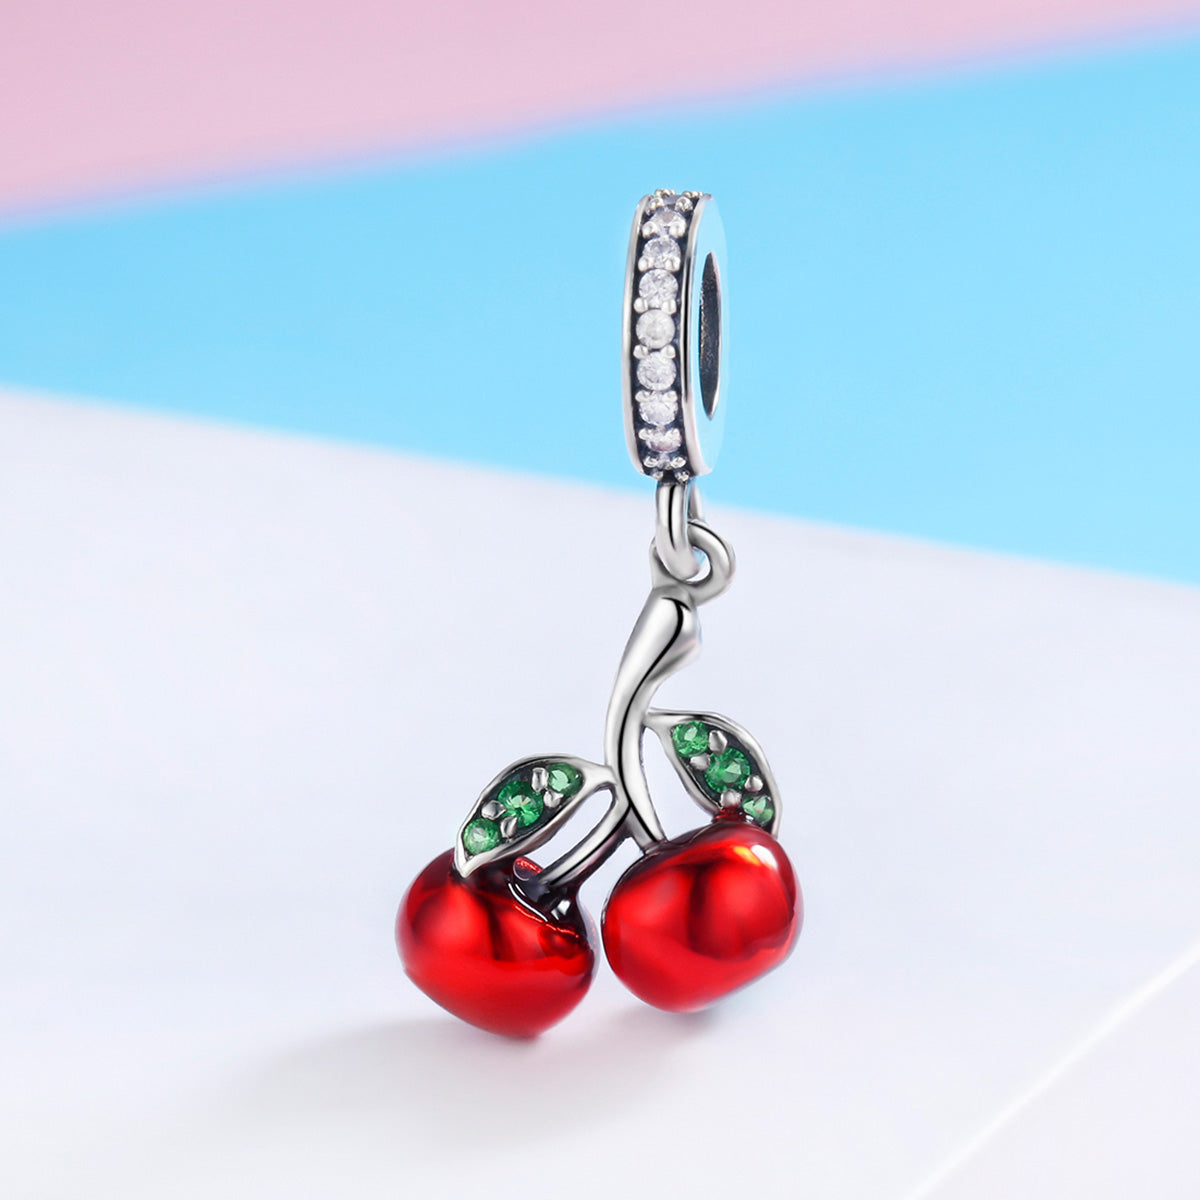 S925 Sterling Silver Oxide Agate Zircon Summer Cherry Dangle Charms